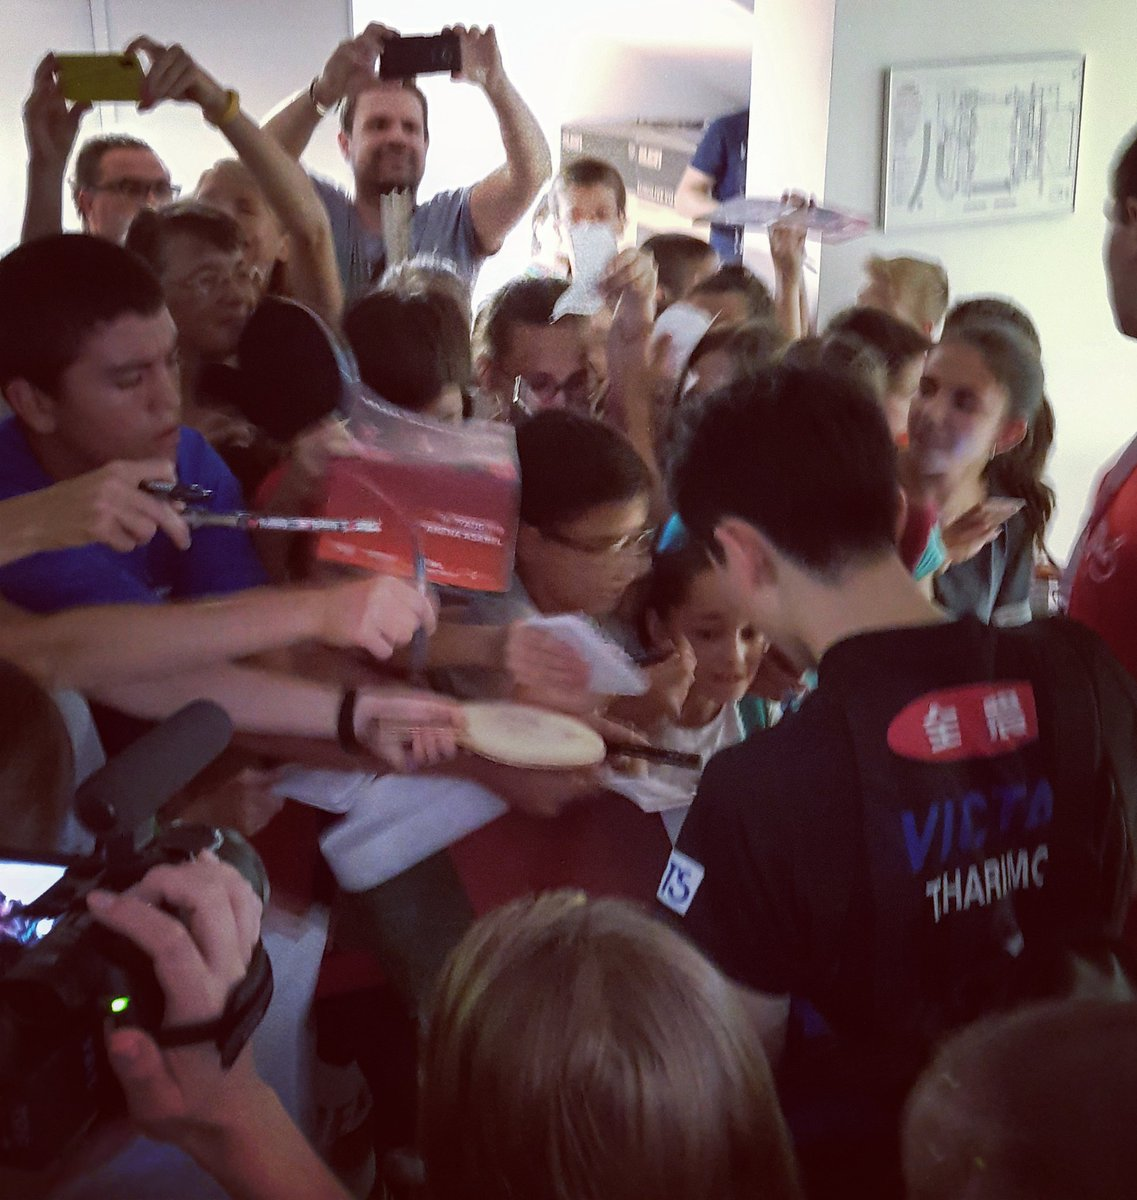 Tomokazu Harimoto meeting his fans here at the #BulgariaOpen after his 4-1 win over Emmanuel Lebesson!